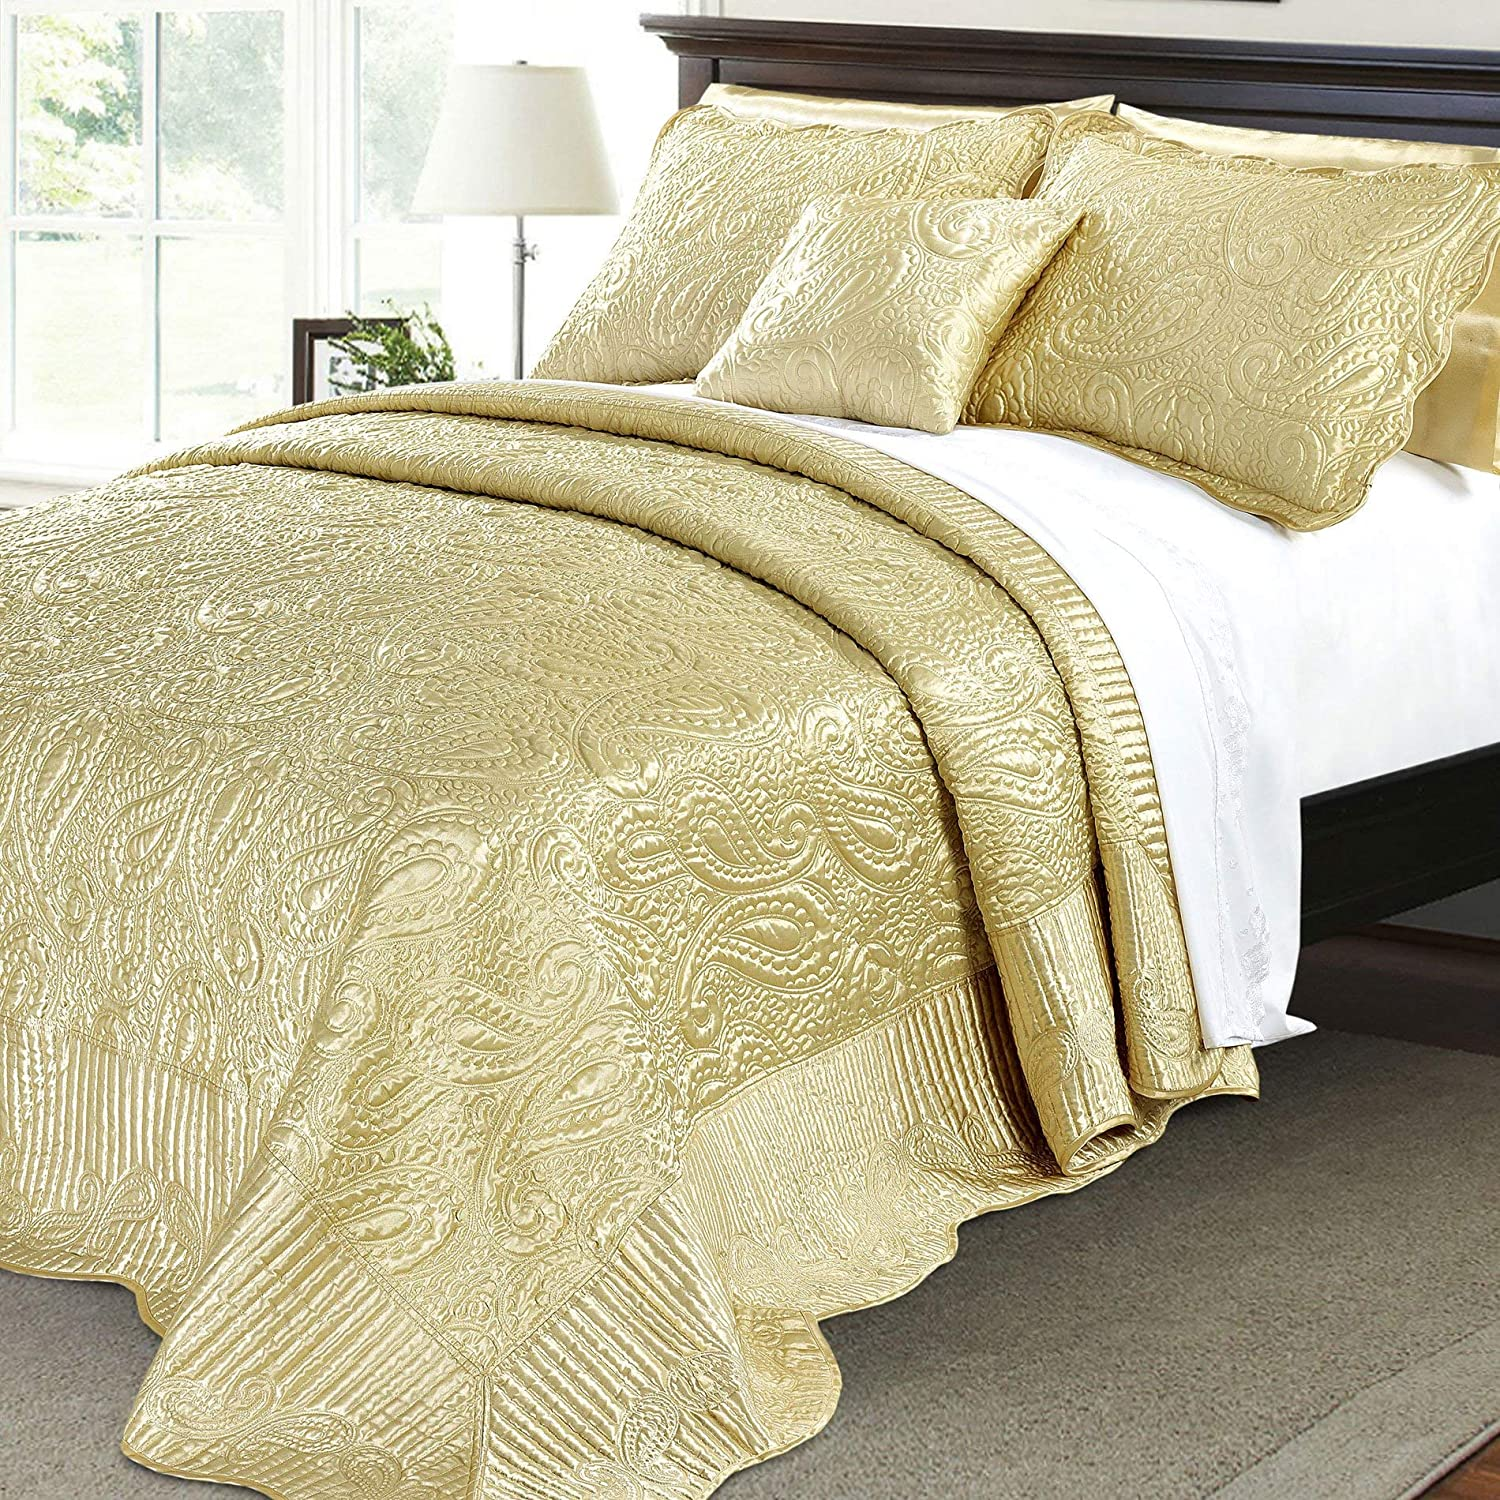 Serenta Quilted Satin 4 Piece Bedspread Set, King, gold